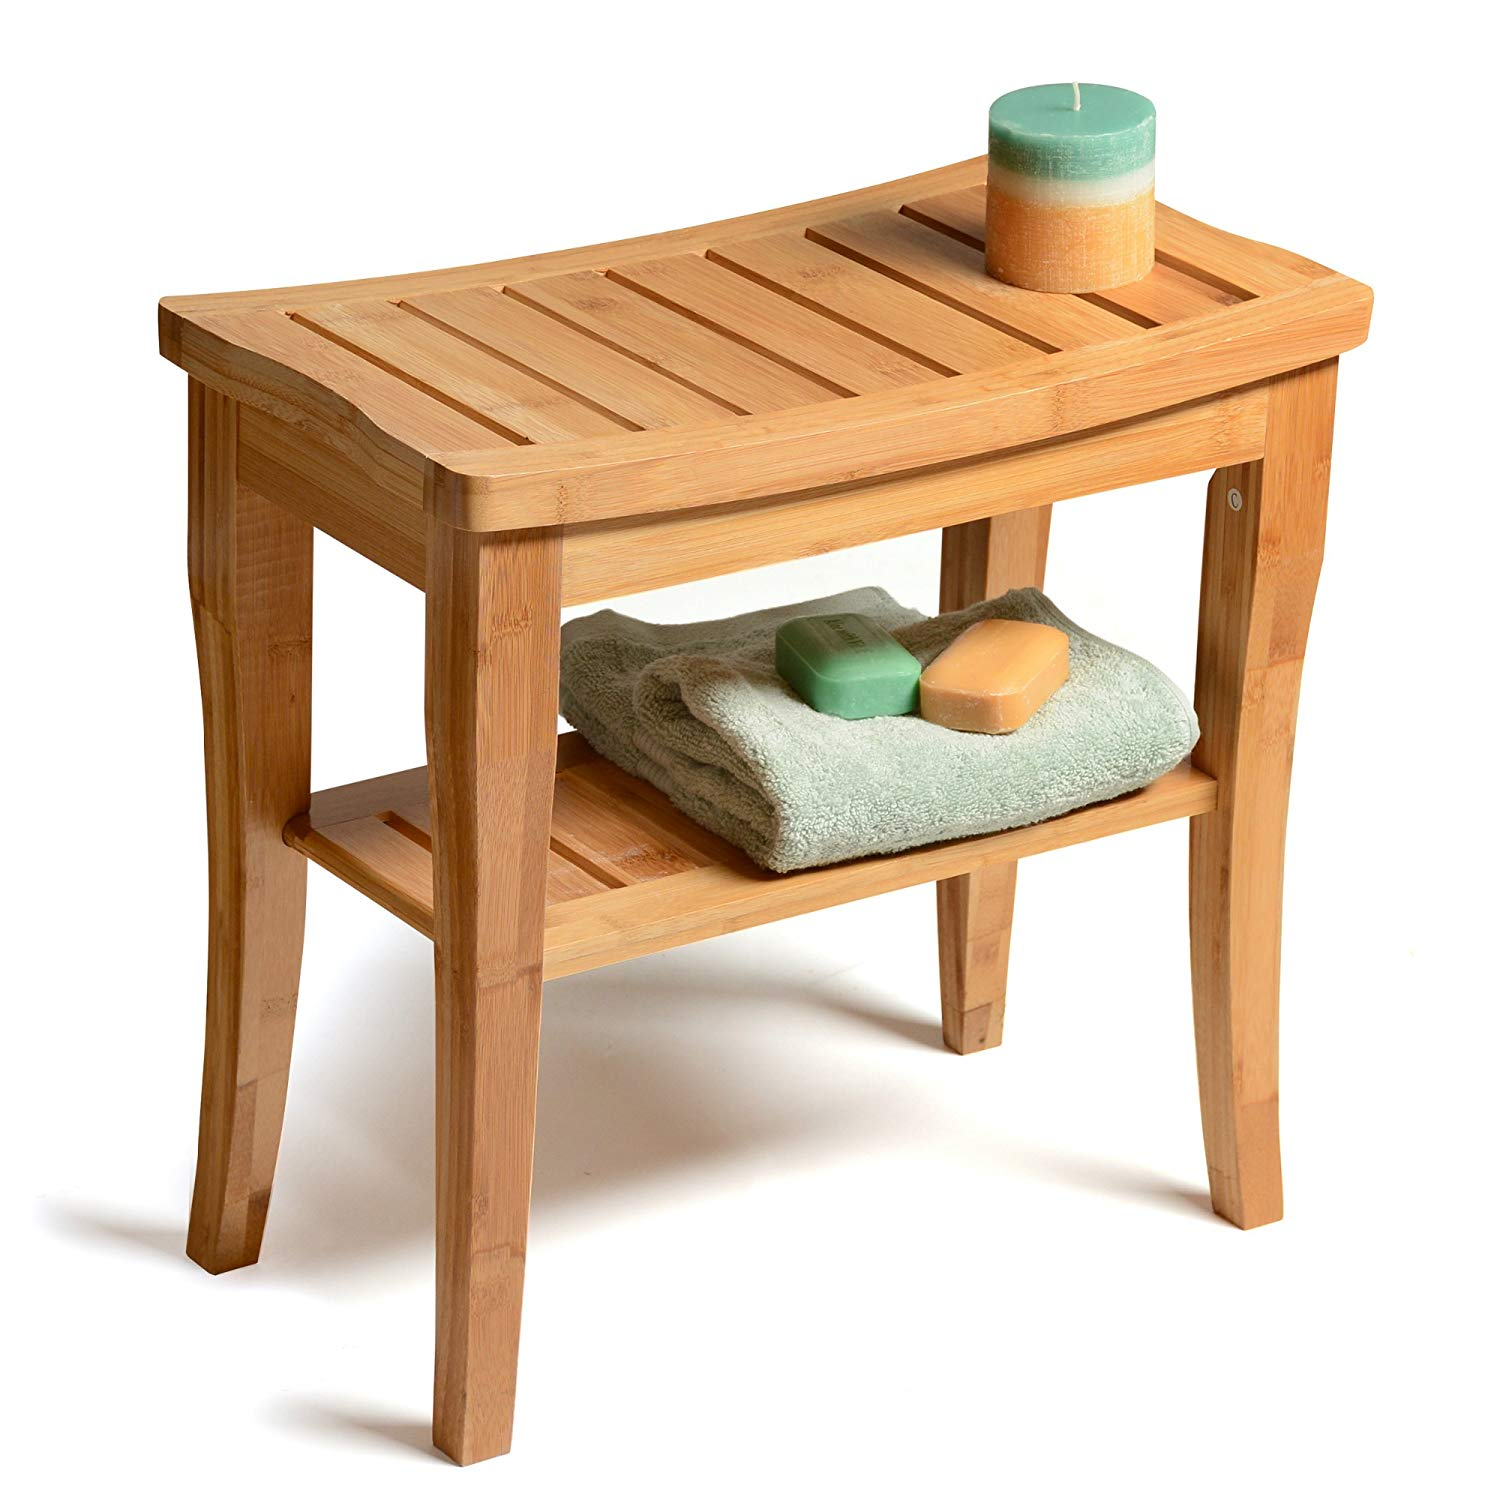 Bambusi Shower Bench Stool With Shelf - Bamboo Spa Bathroom Décor